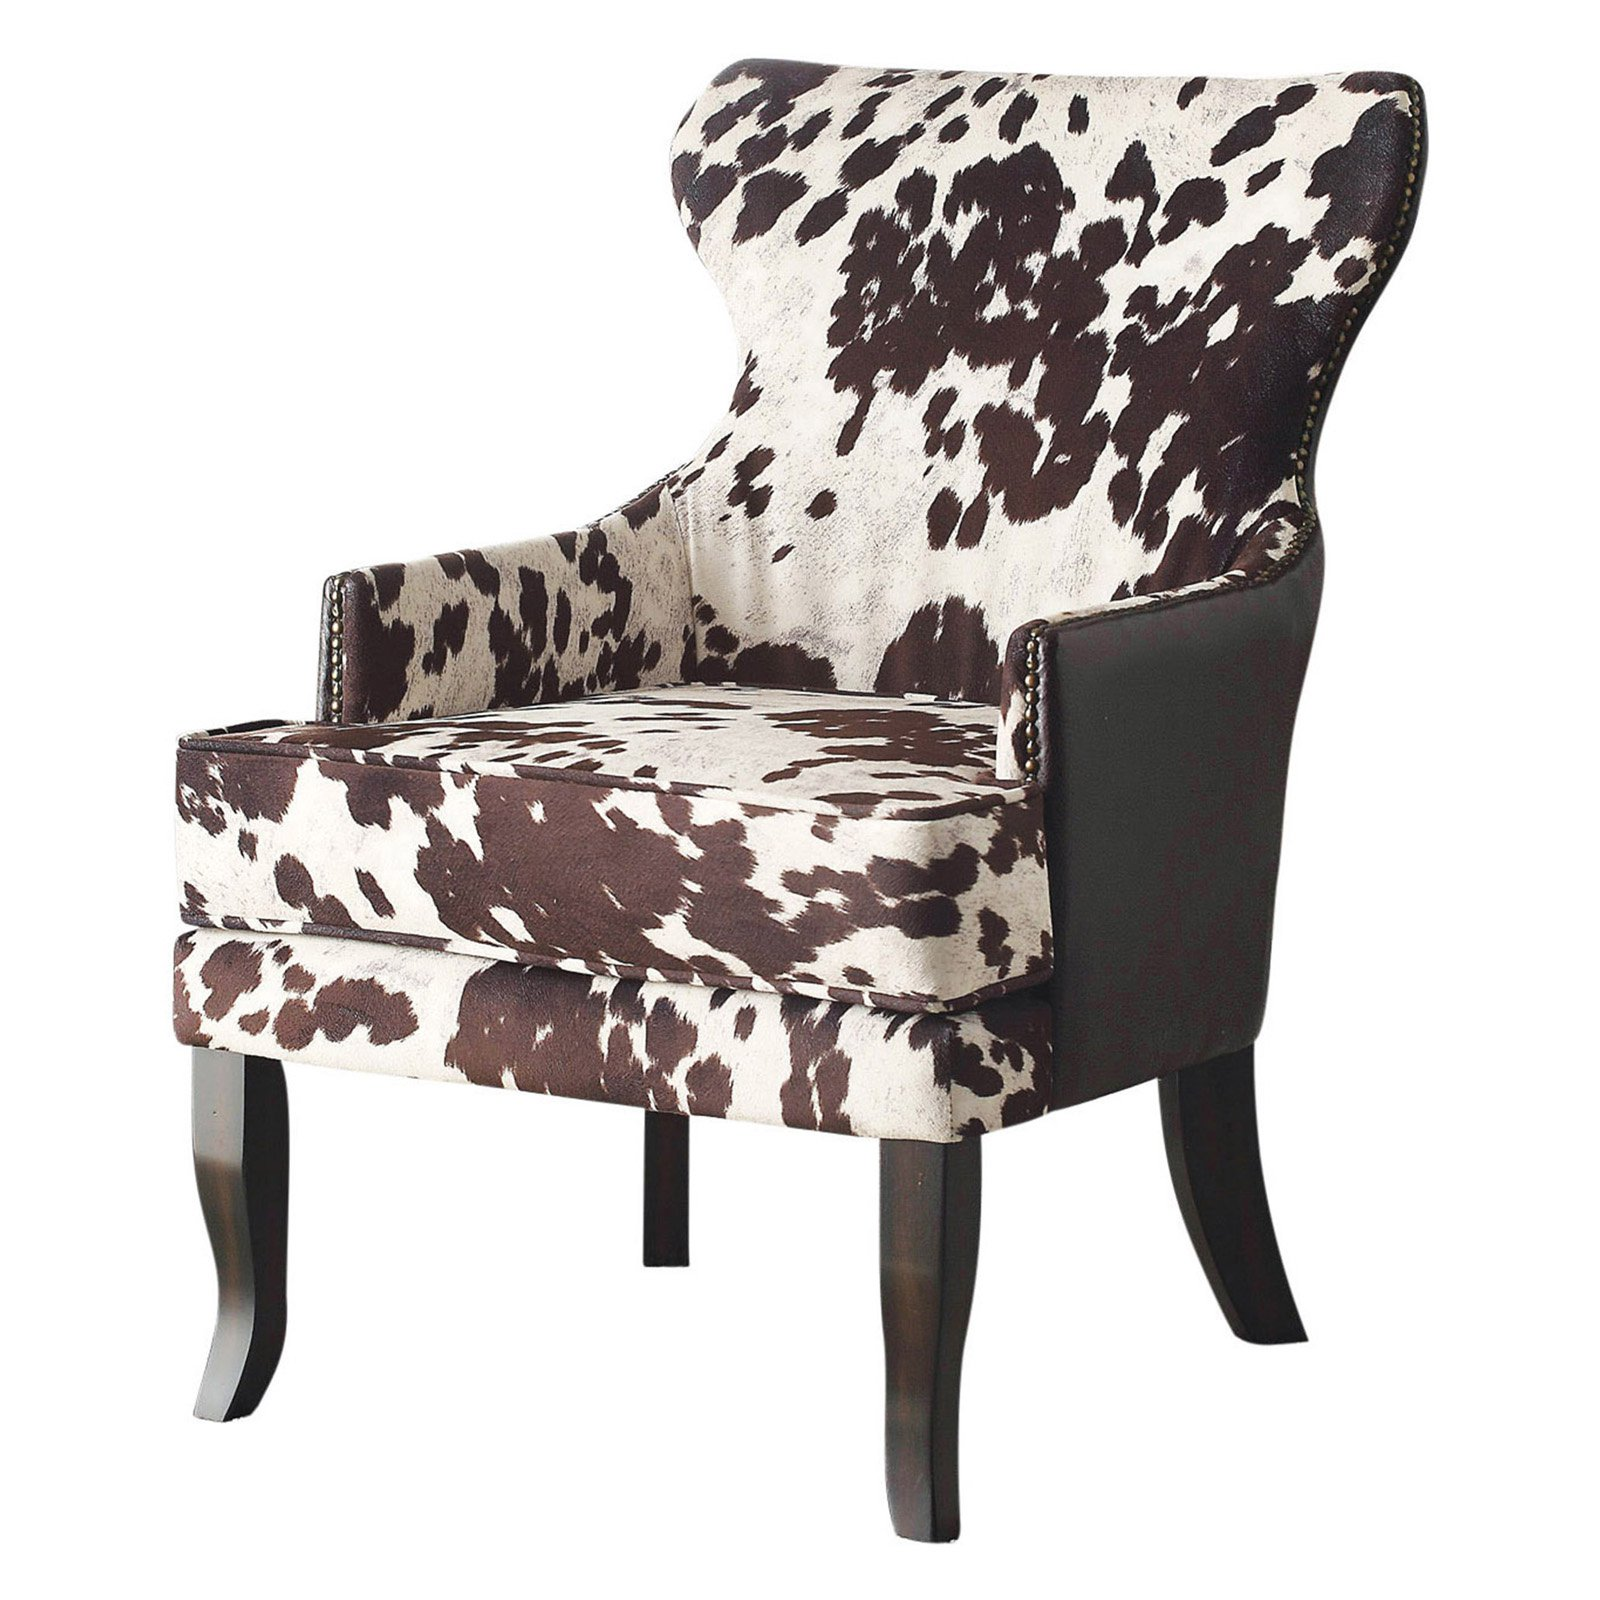 !nspire Faux Cowhide Accent Wing back Chair